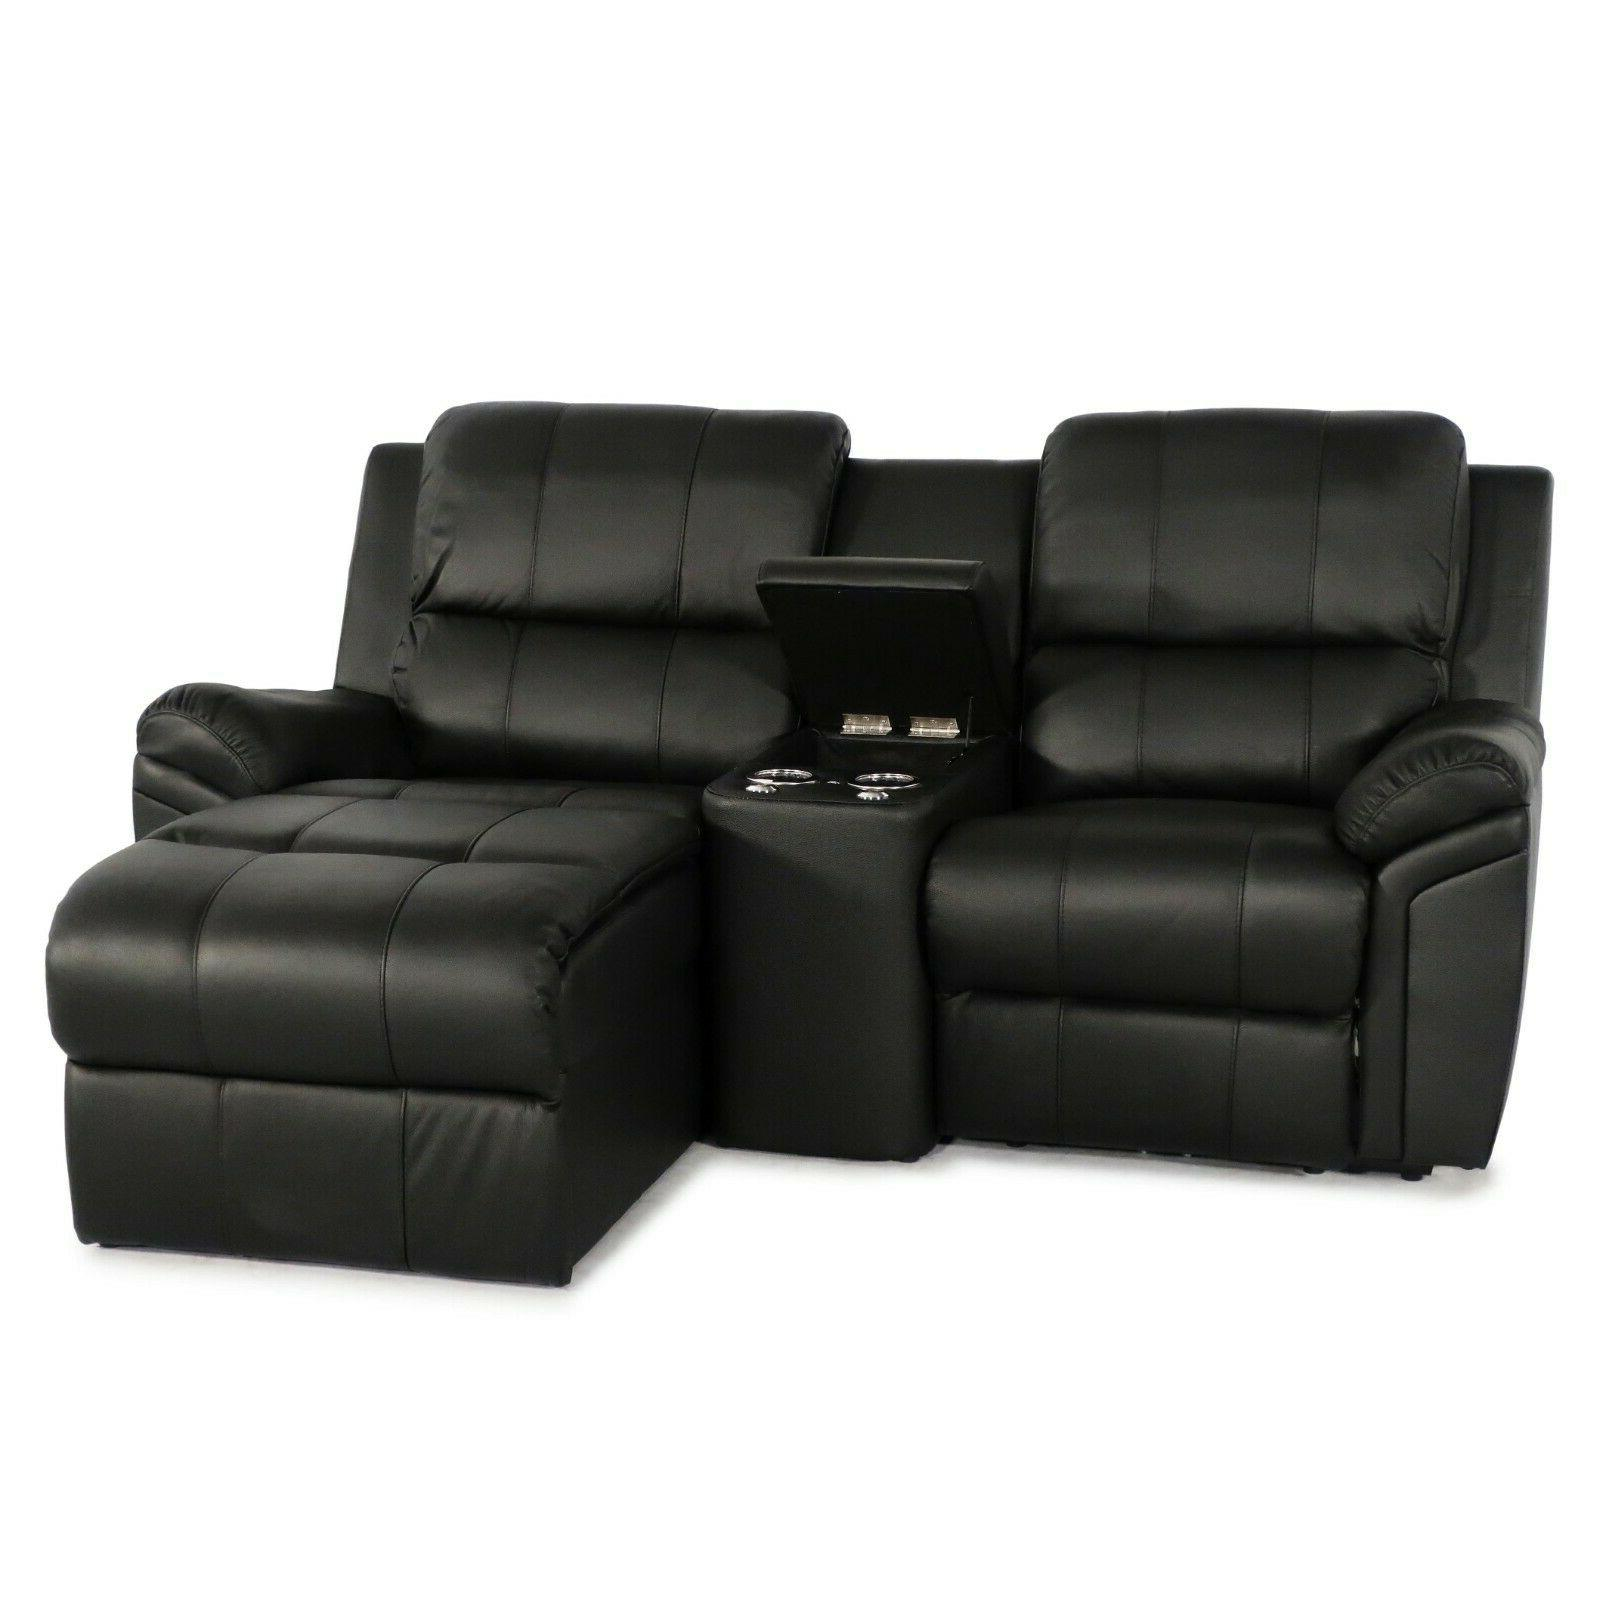 Seatcraft Home Theater Recline